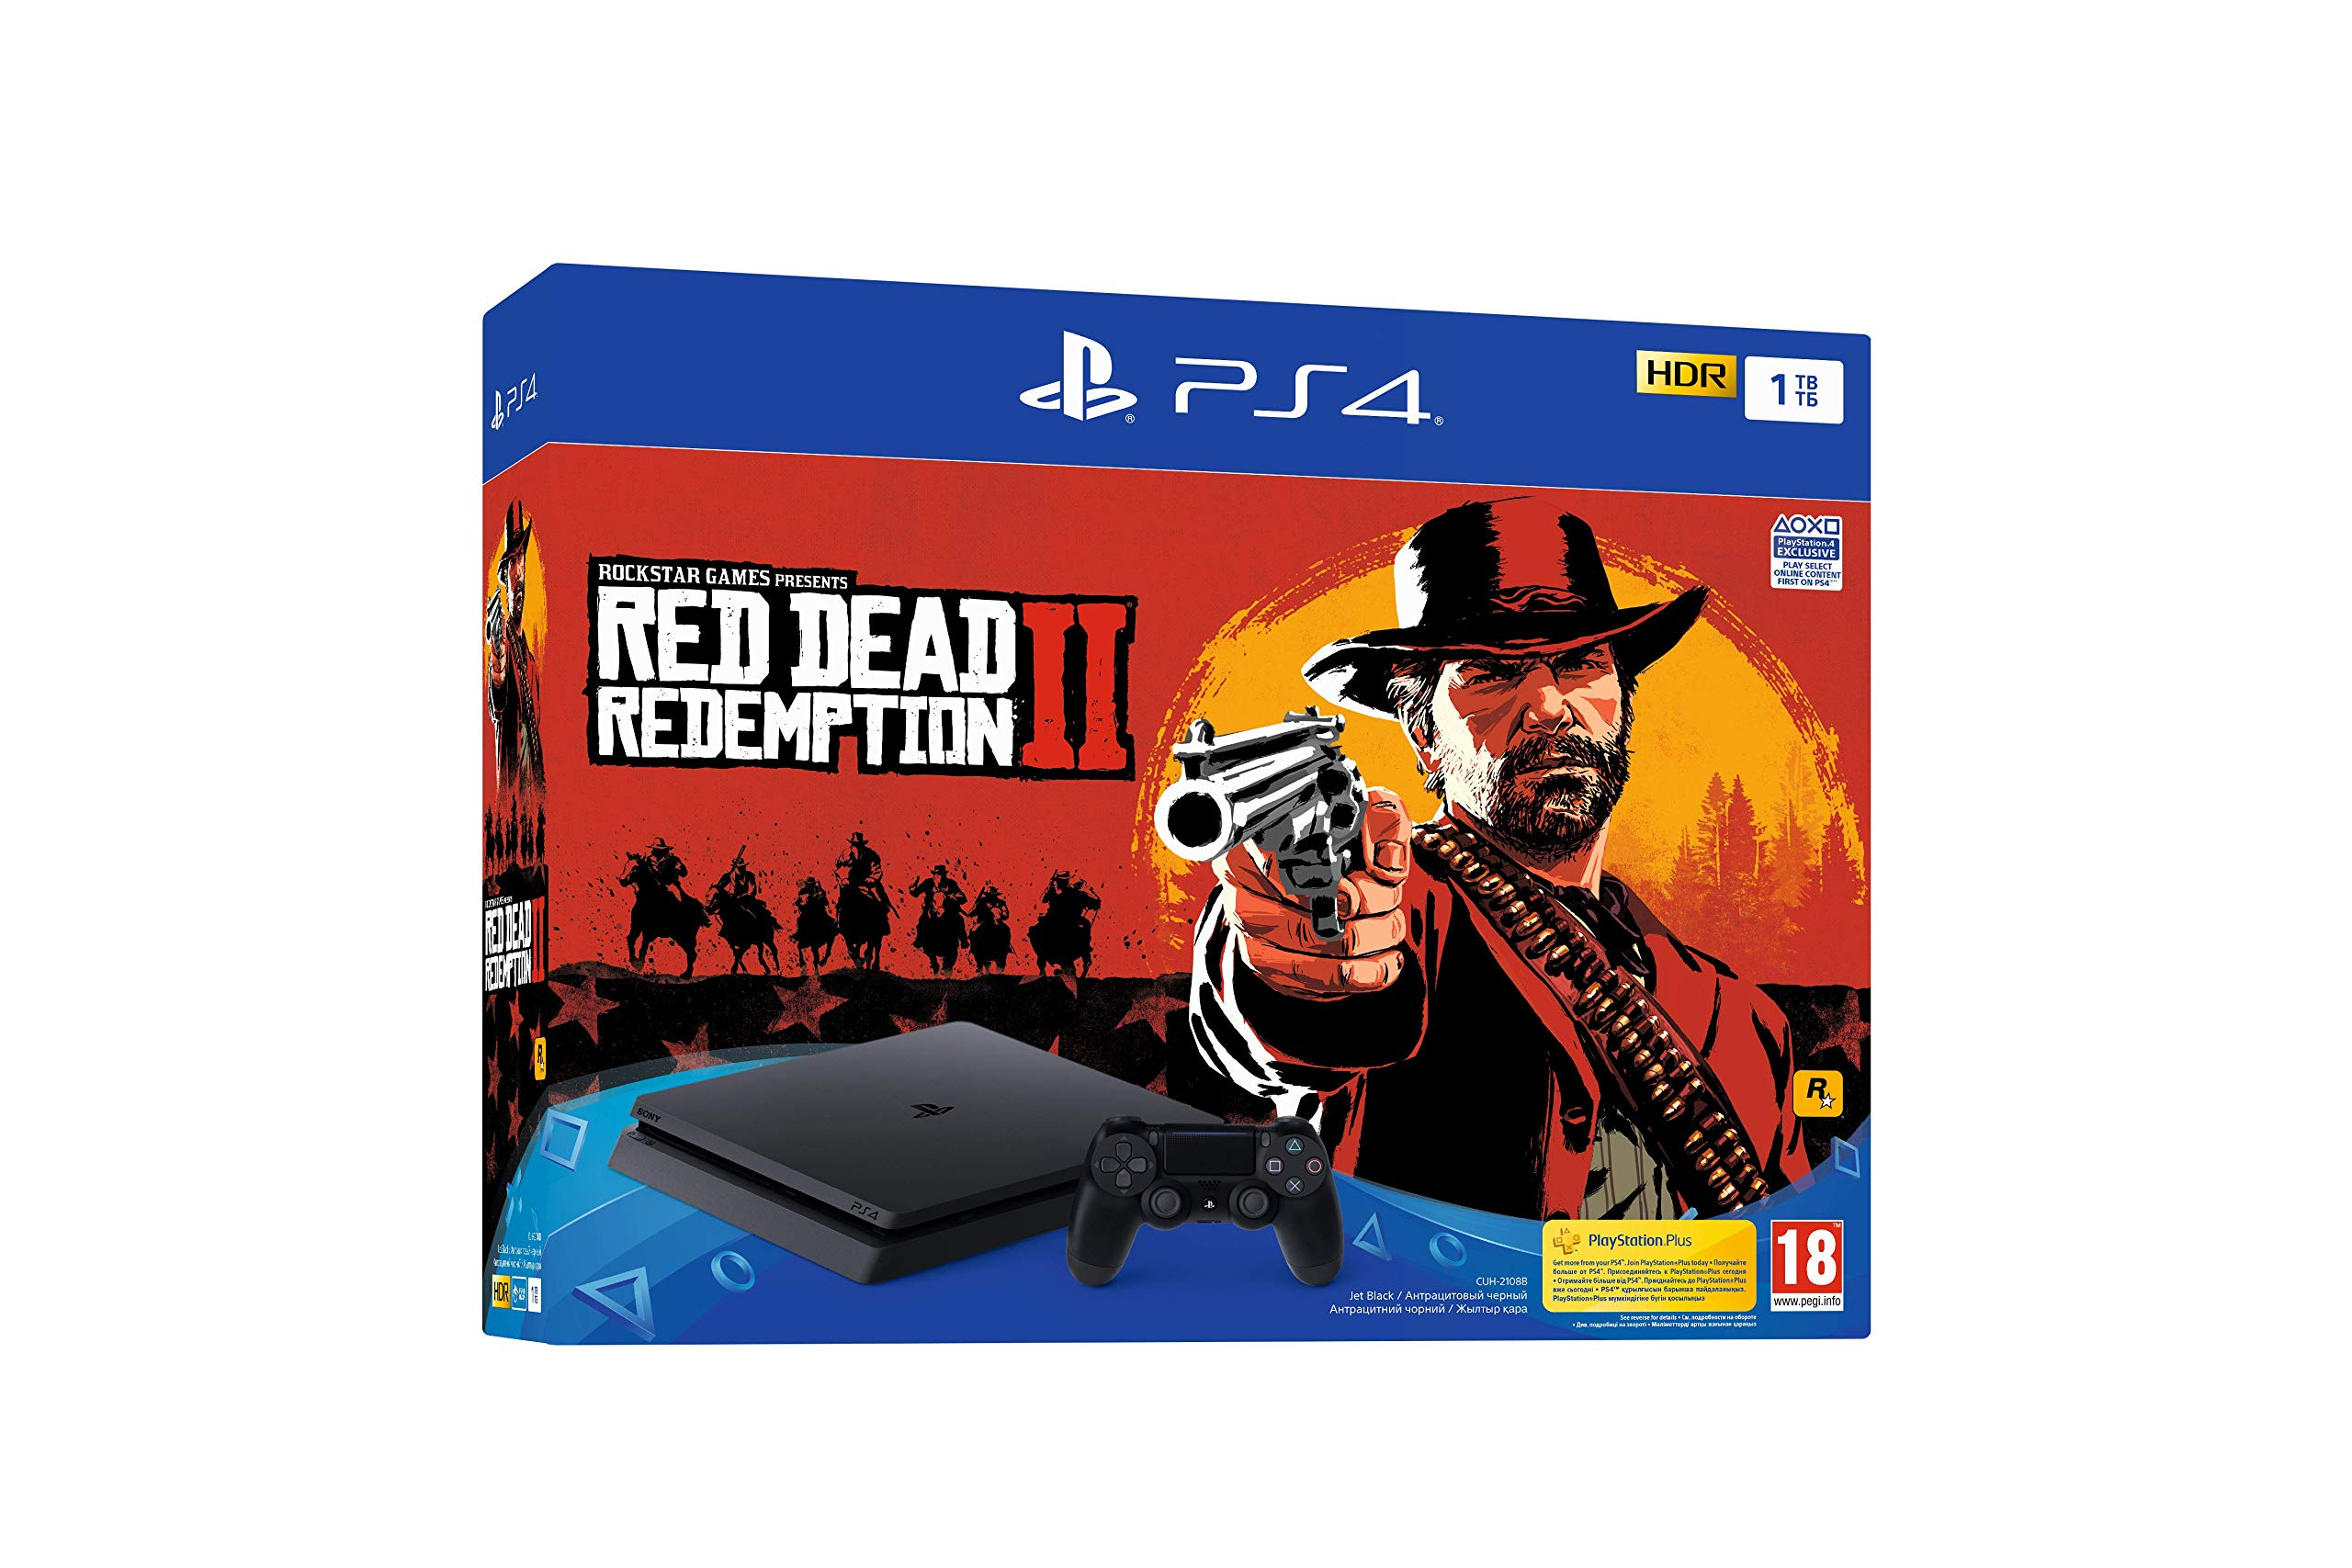 Best Rated In Video Games Helpful Customer Reviews Knight Raizer Portable Ps2 3 Sony Ps4 Slim 1tb Console Free Game Red Dead Ii Redemption Product Image